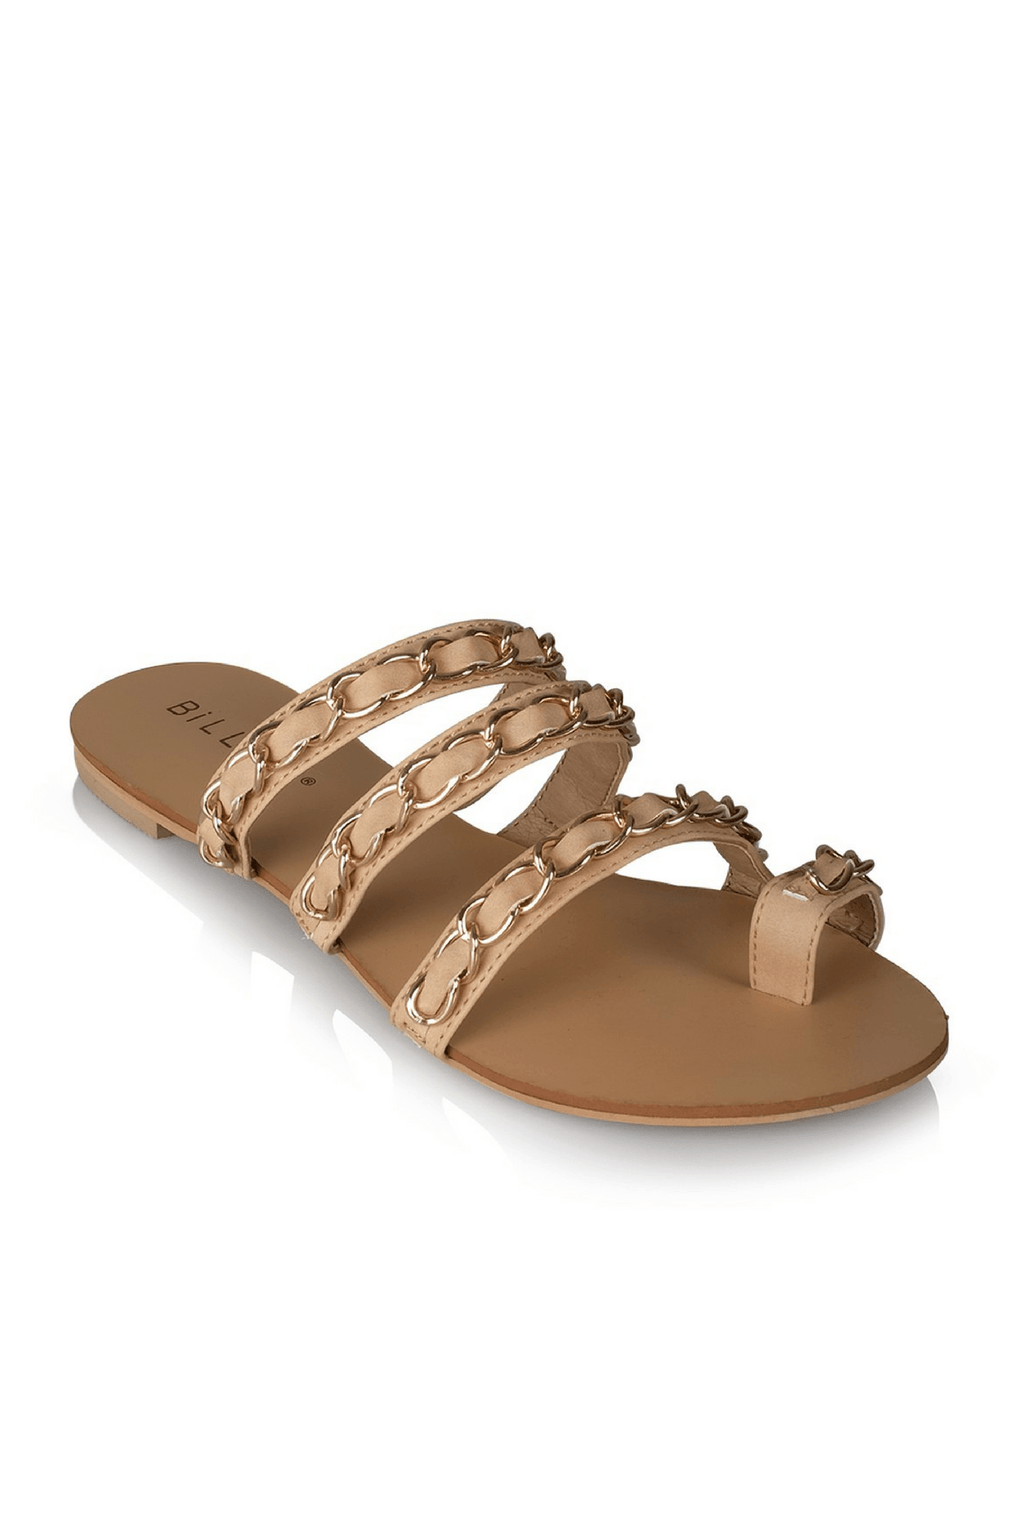 Miah Slides in Nude - Billini Shoes